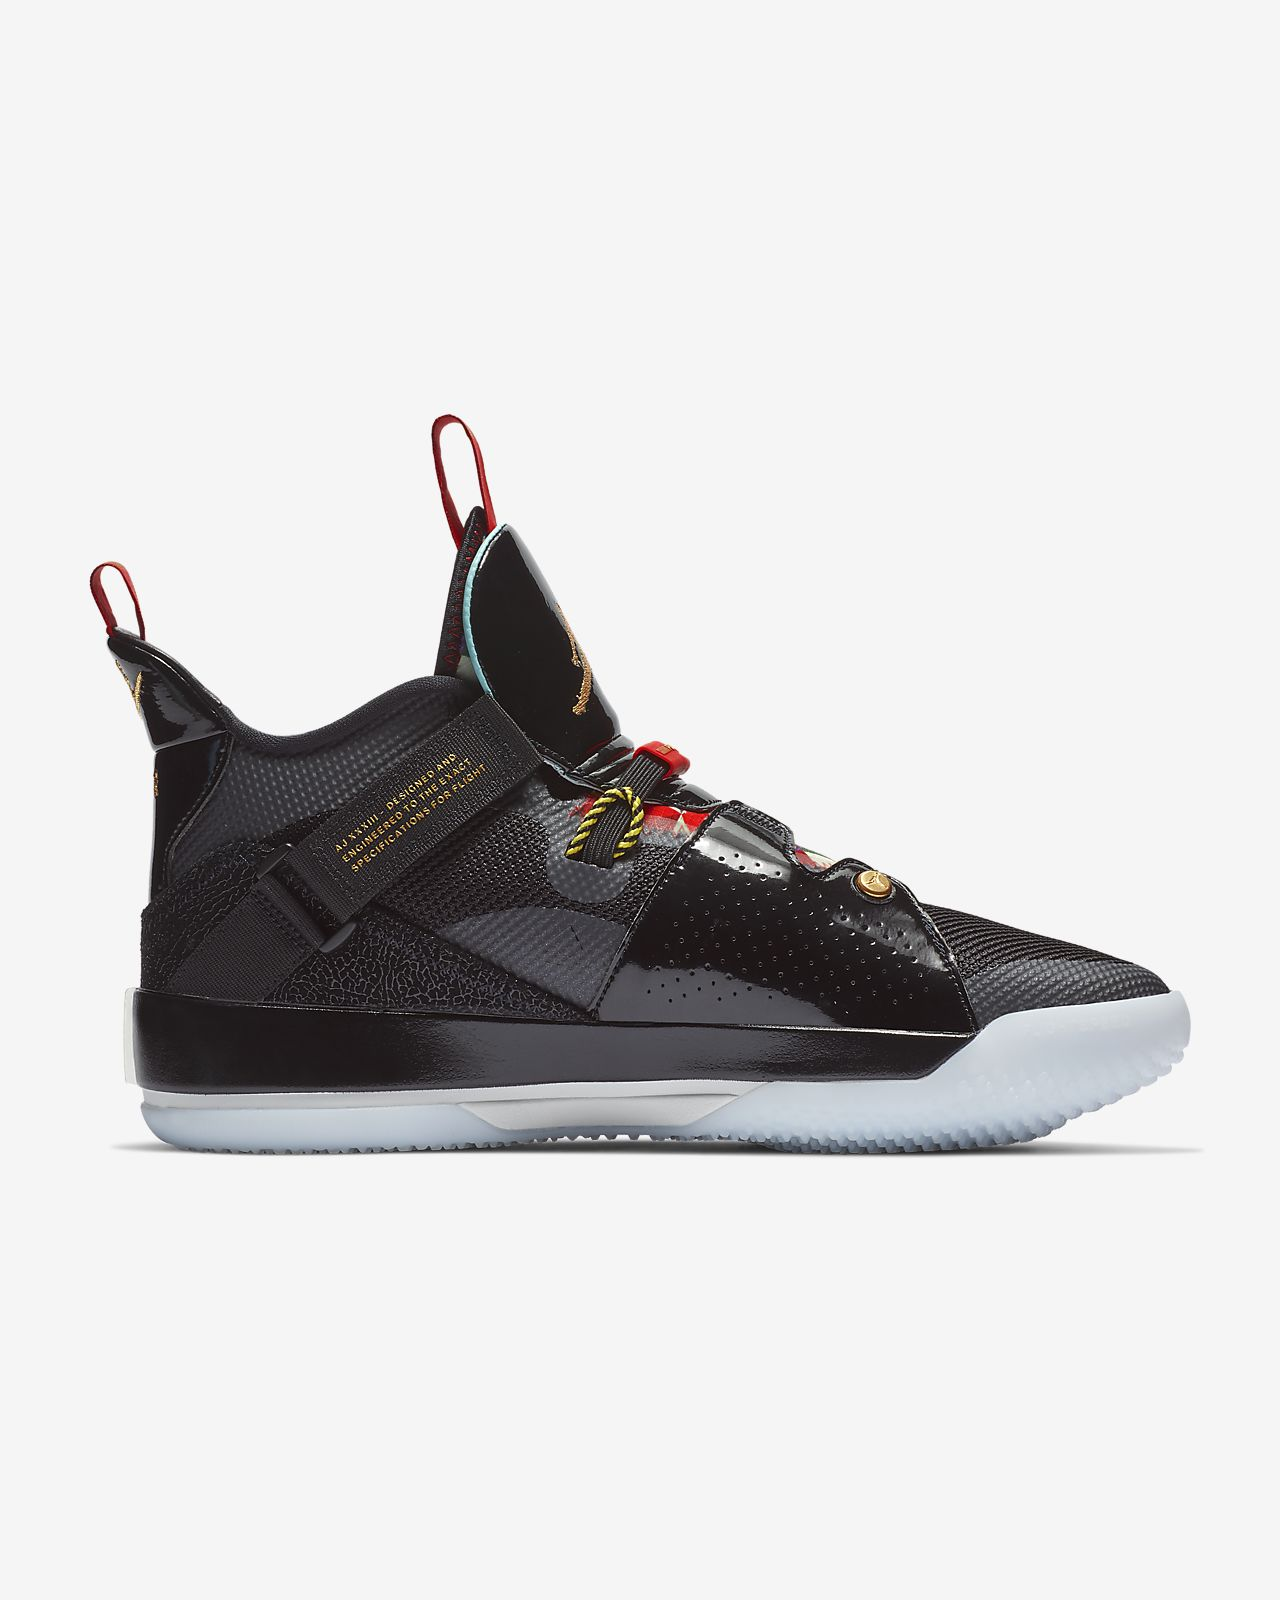 d8440b0650b Low Resolution Air Jordan XXXIII Basketball Shoe Air Jordan XXXIII  Basketball Shoe